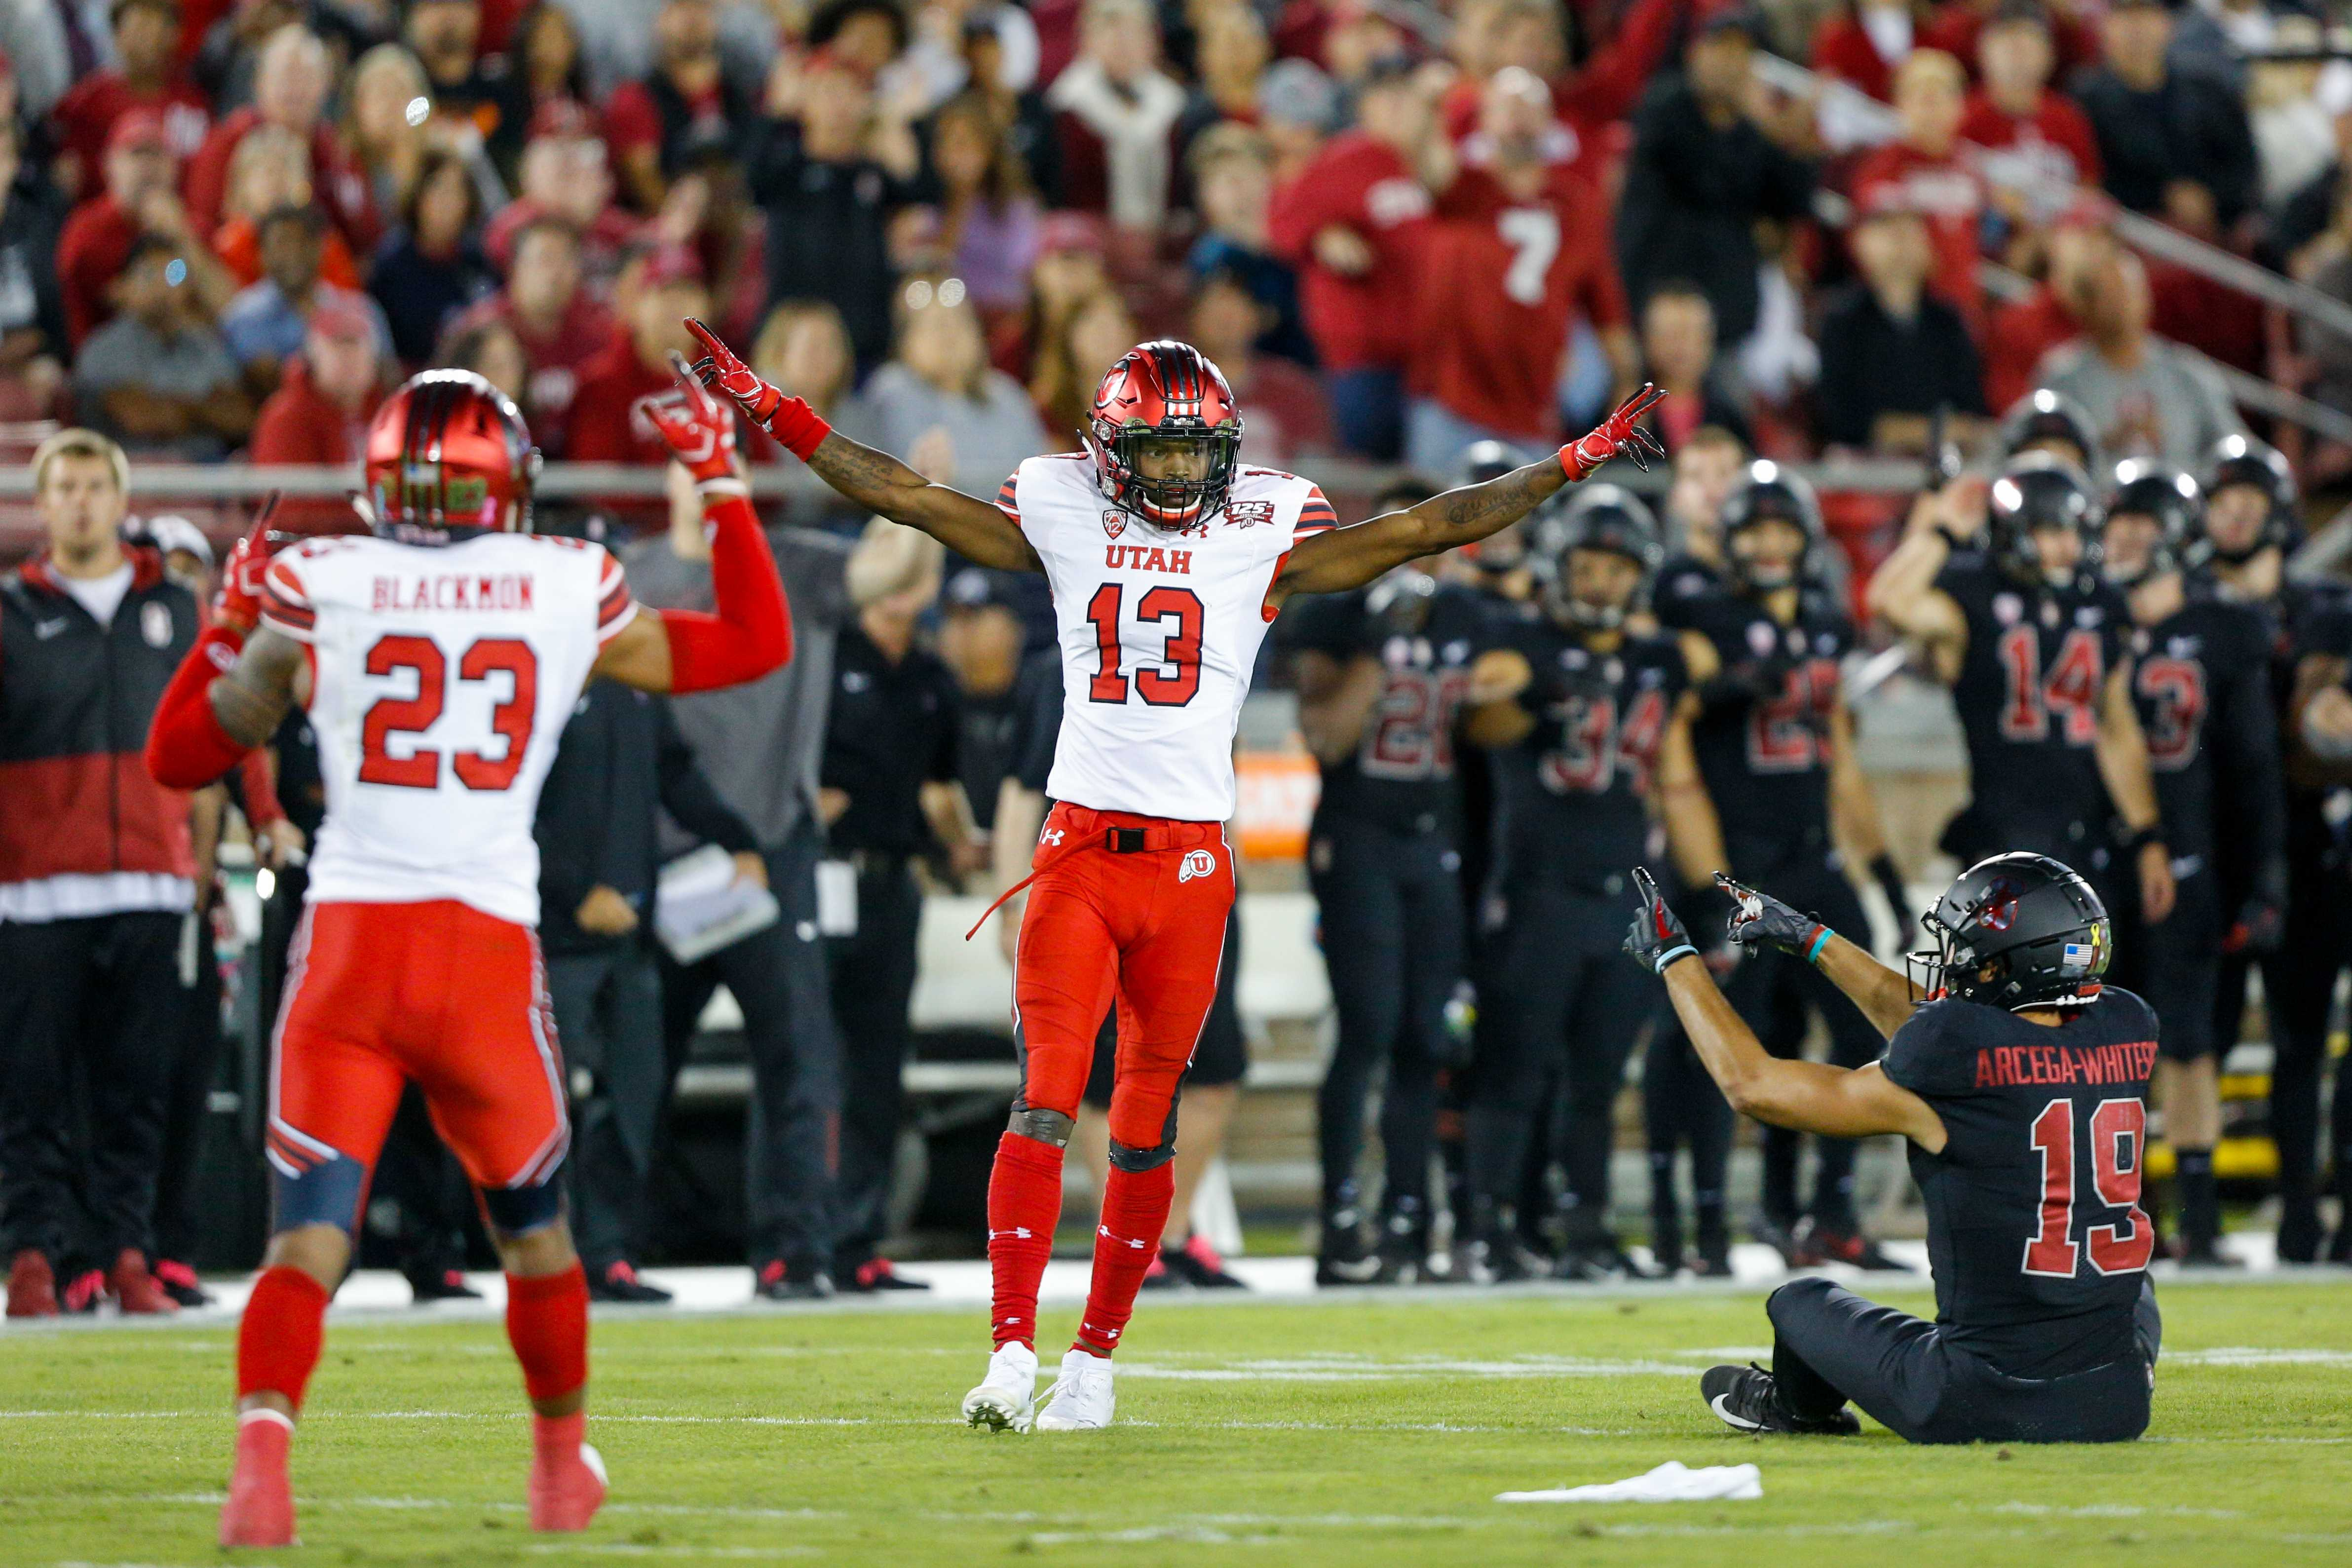 University of Utah senior defensive back Marquise Blair (13) celebrated after an incompletion (play however was called back) during an NCAA Football game vs. Stanford Cardinal at Stanford Stadium in Palo Alto, CA in 2018. Chronicle archives.